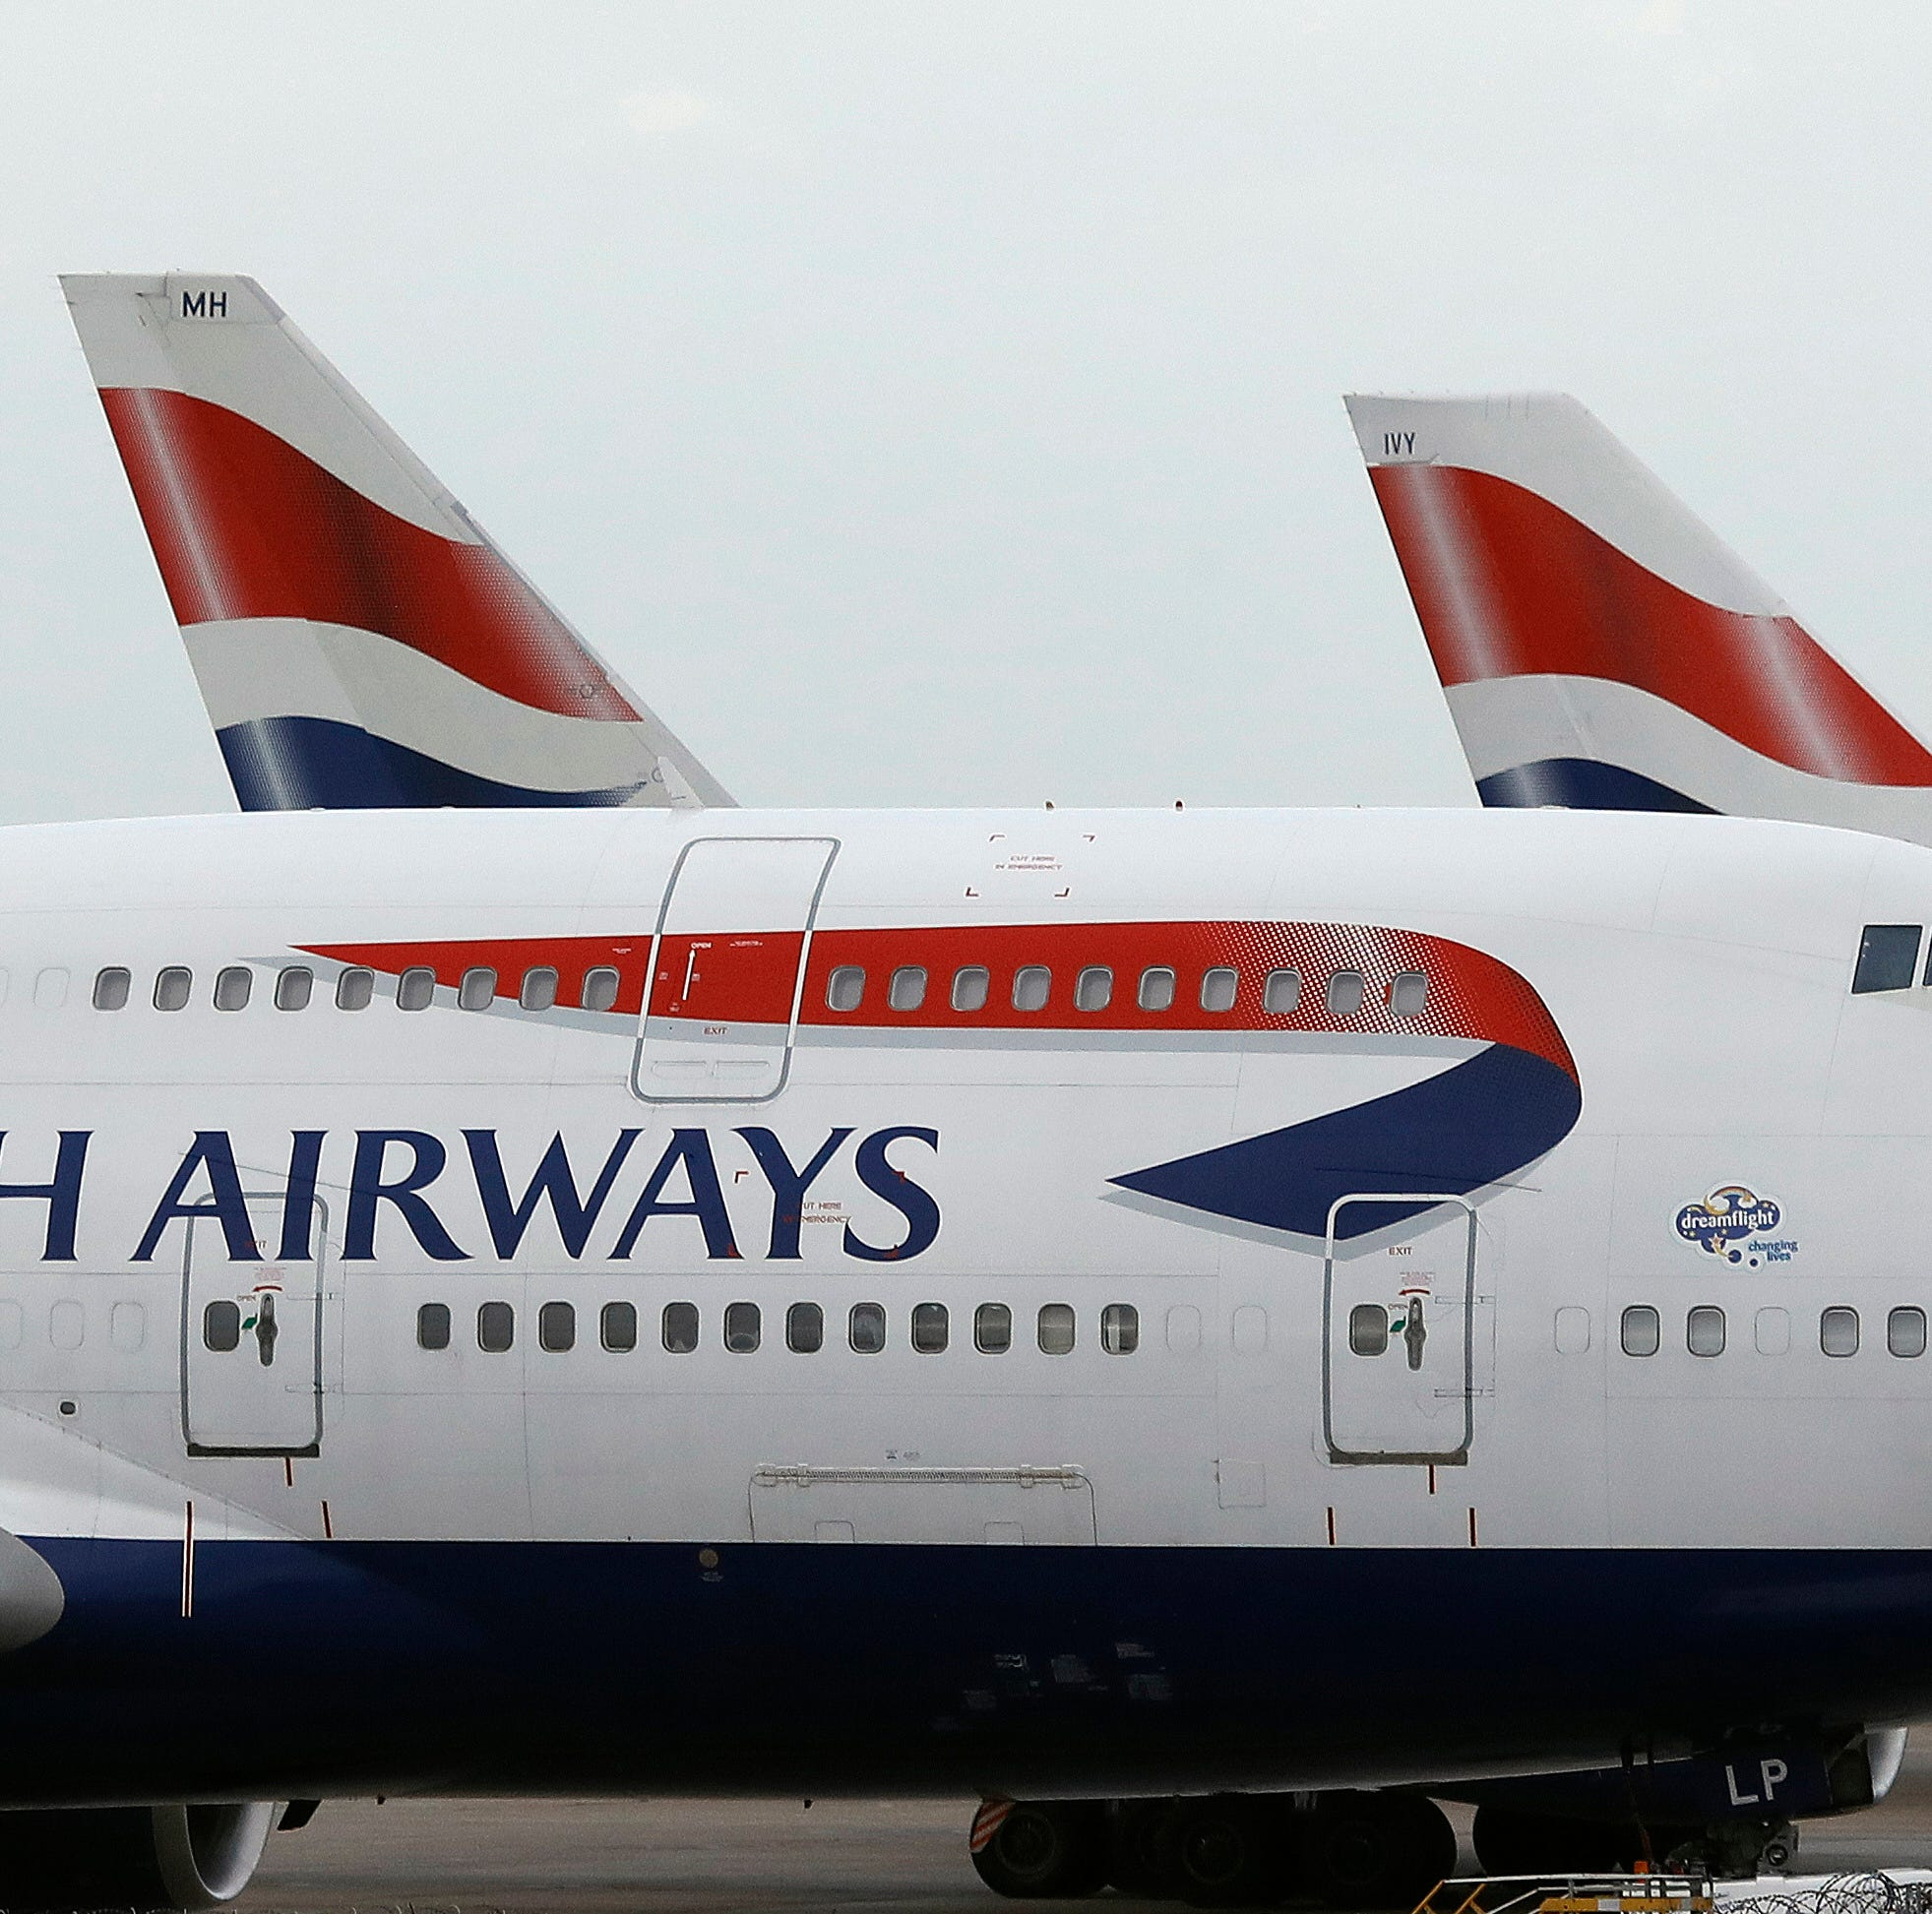 FILE - In this Jan. 10, 2017 file photo, British Airways planes are parked at Heathrow Airport in London. ??British Airways will resume flights to Pakistan in June 2019, a decade after it suspended operations following bombing on the Marriott Hotel in Islamabad that killed dozens, an official of British Airways said in a statement, Tuesday Dec. 18. 2018. (AP Photo/Frank Augstein, File) ORG XMIT: ISL101